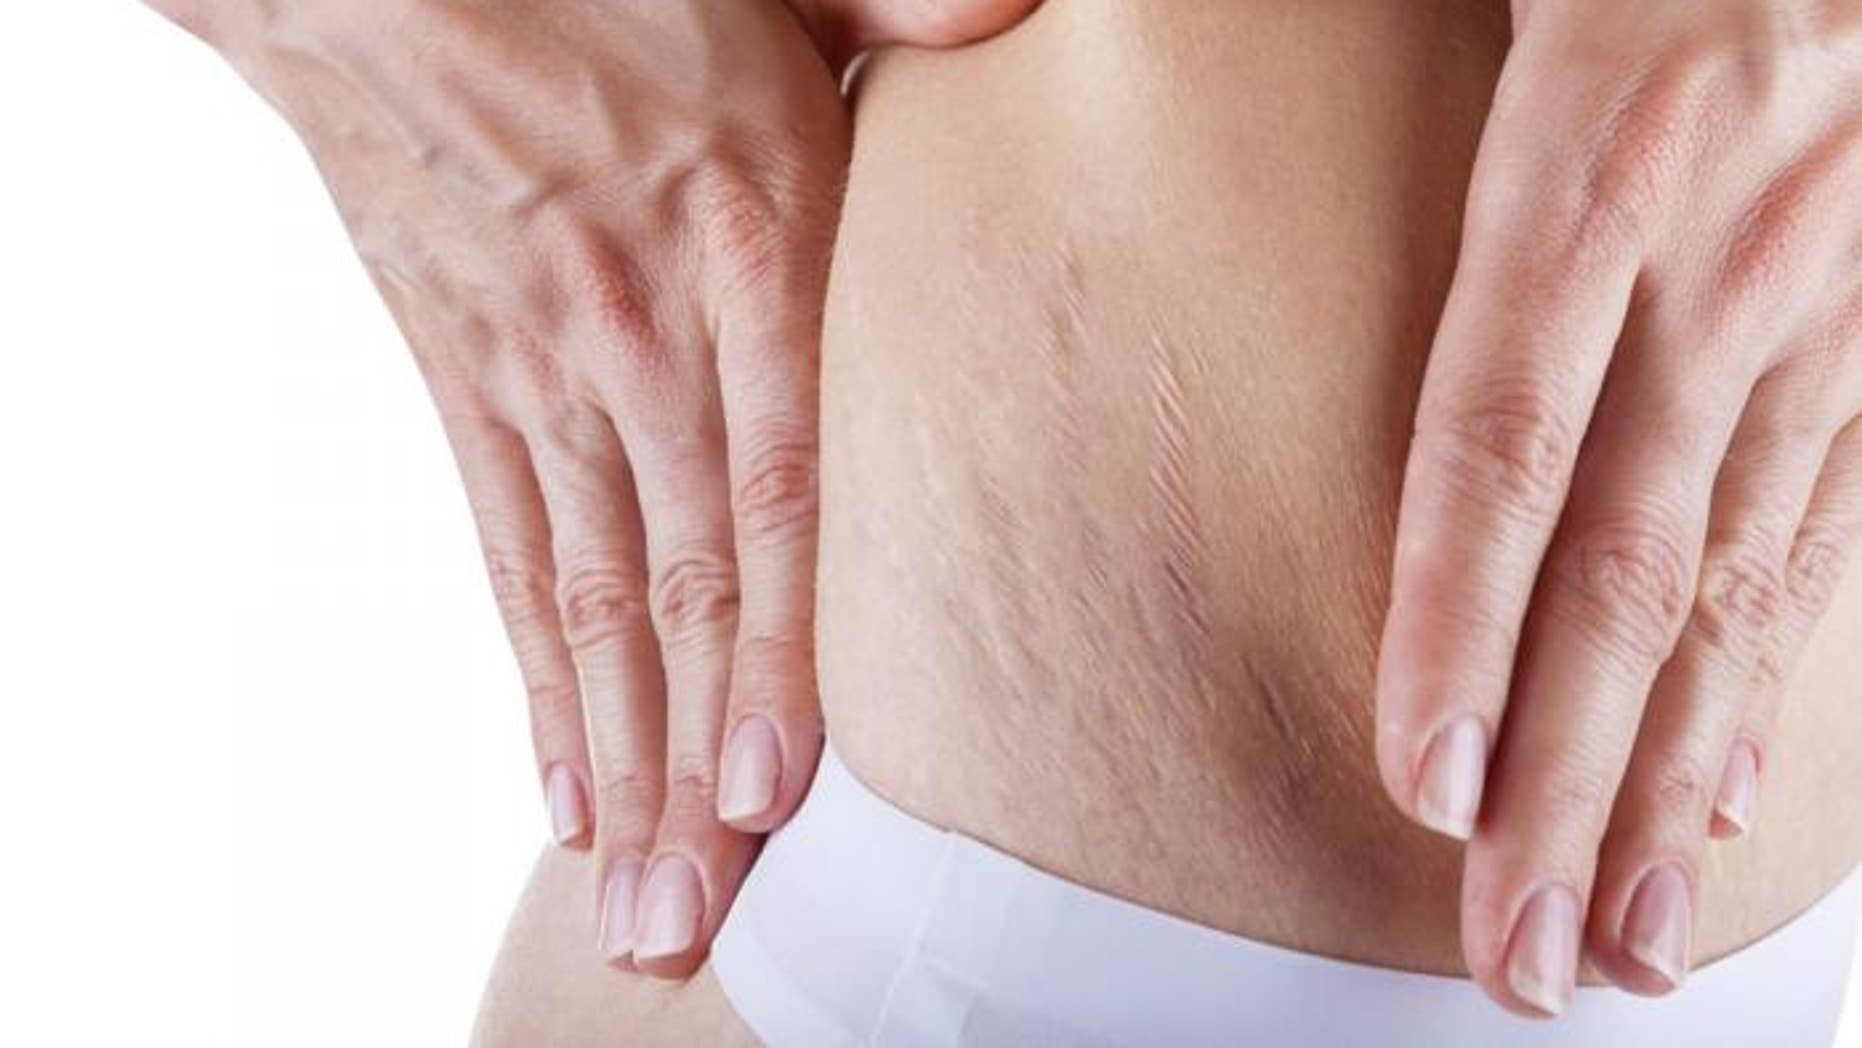 Stretch marks on the body: get rid of and warn